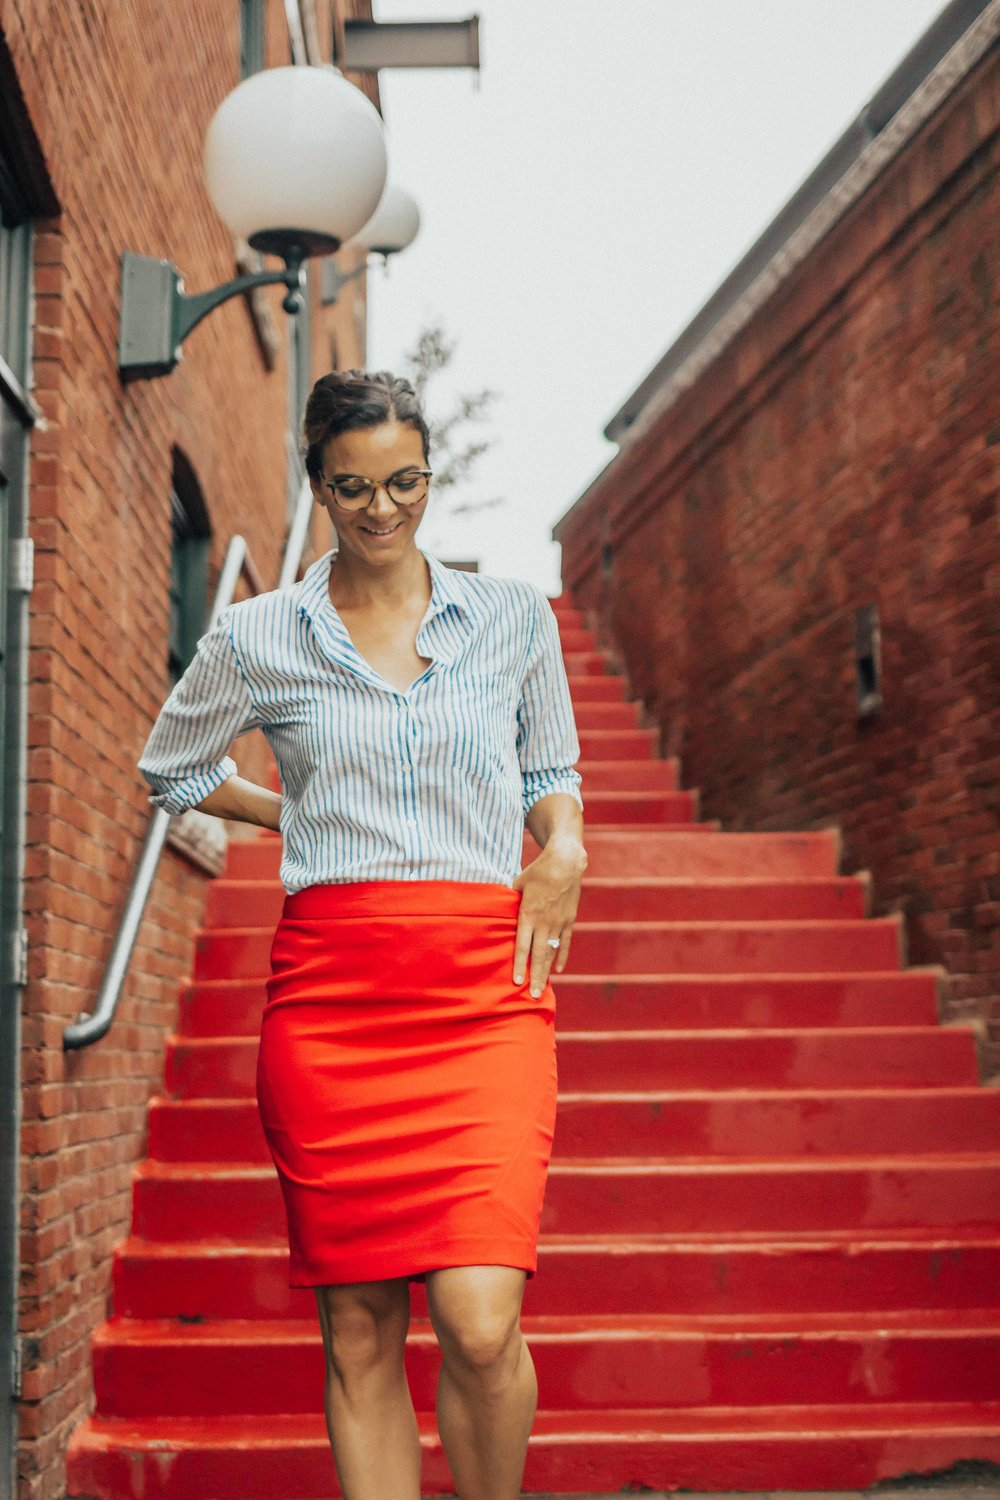 OUTFIT DETAILS - RED PENCIL SKIRT (similar here & here)STRIPED BUTTON-DOWN (under $20)NUDE HEELSGLASSES